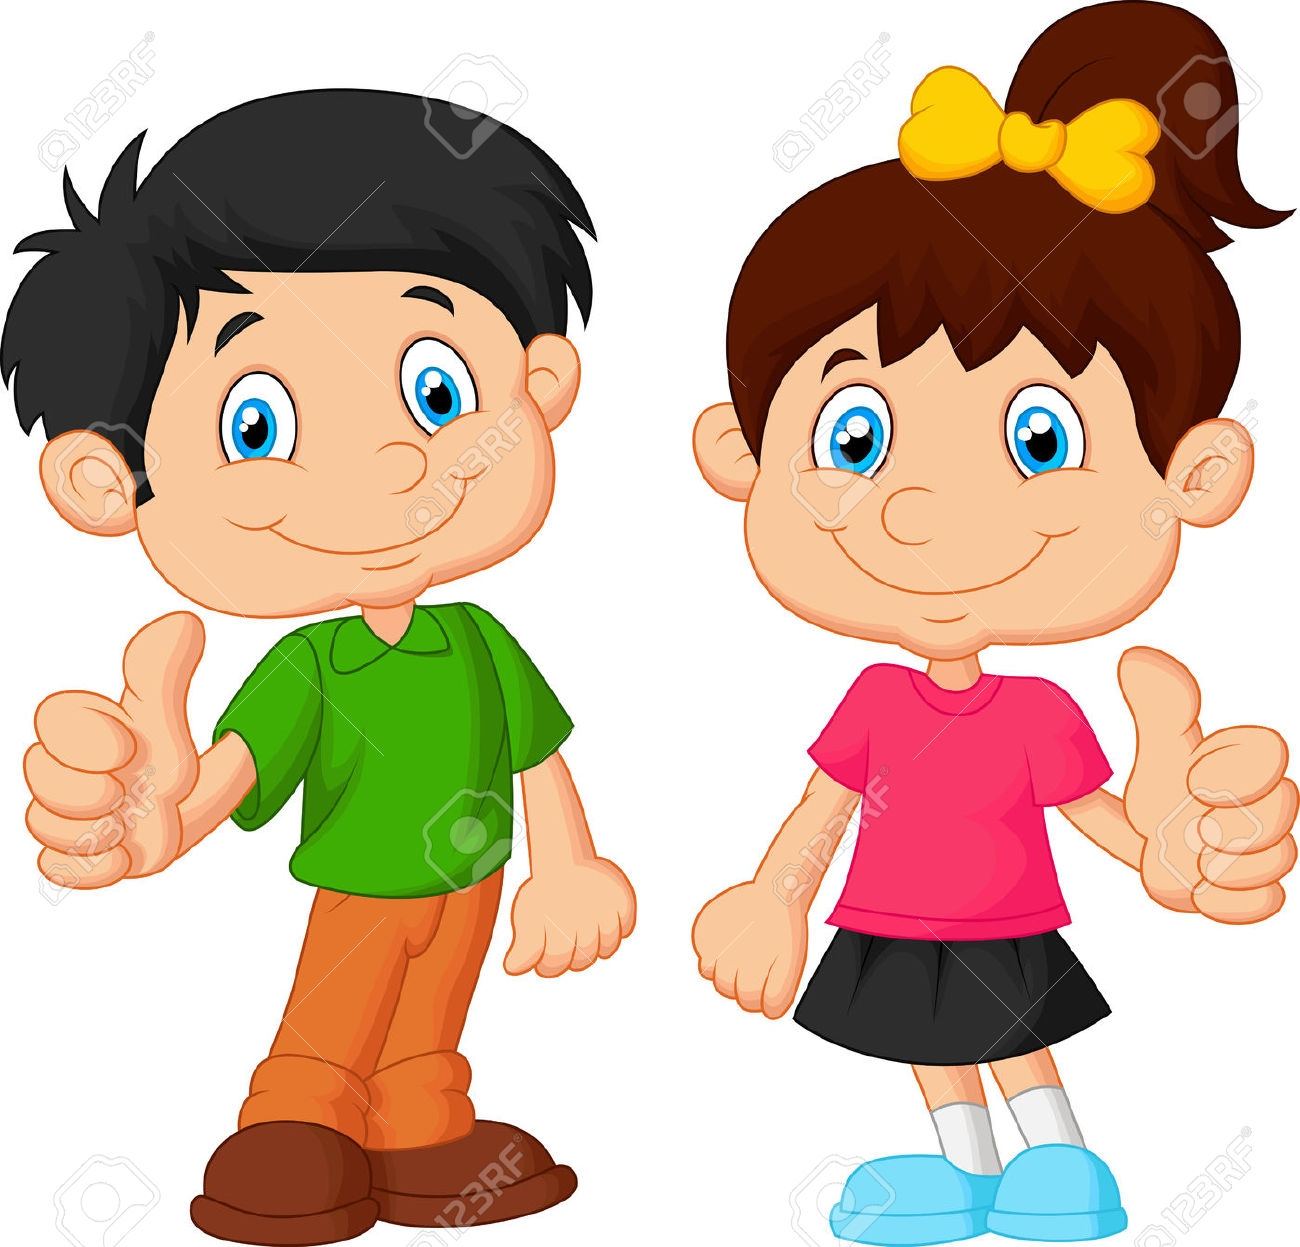 Boy thumbs up clipart graphic freeuse Thumbs up kid clipart - ClipartFest graphic freeuse